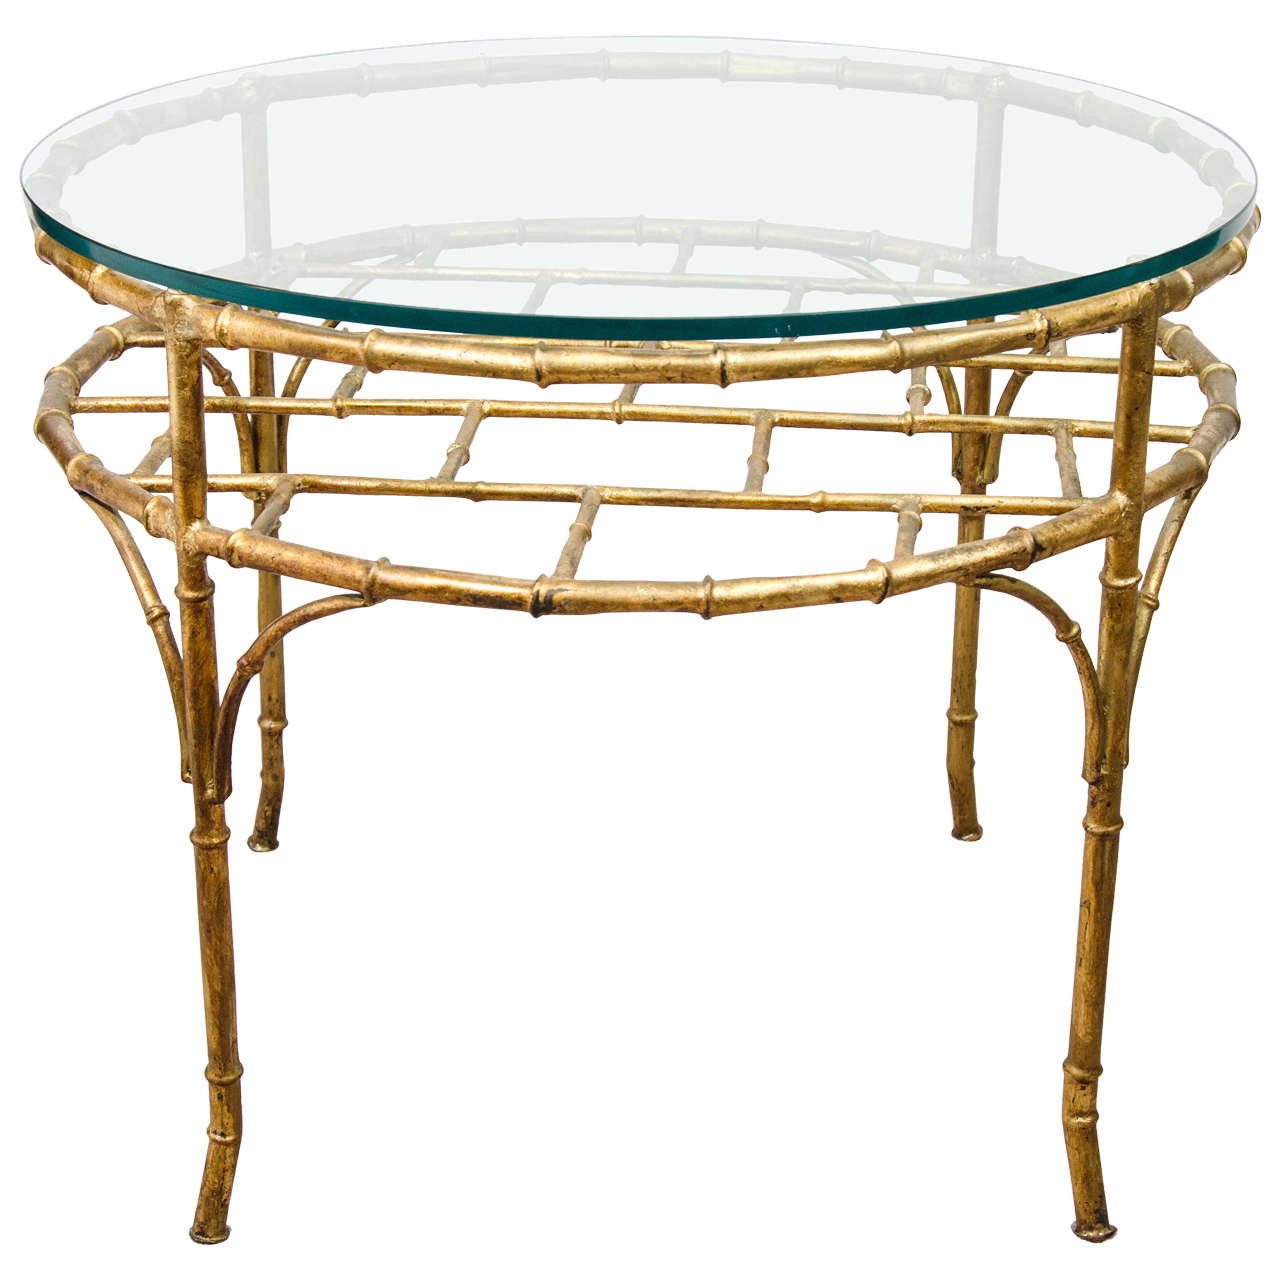 Gilt-metal faux-bamboo occasional table, 1950s